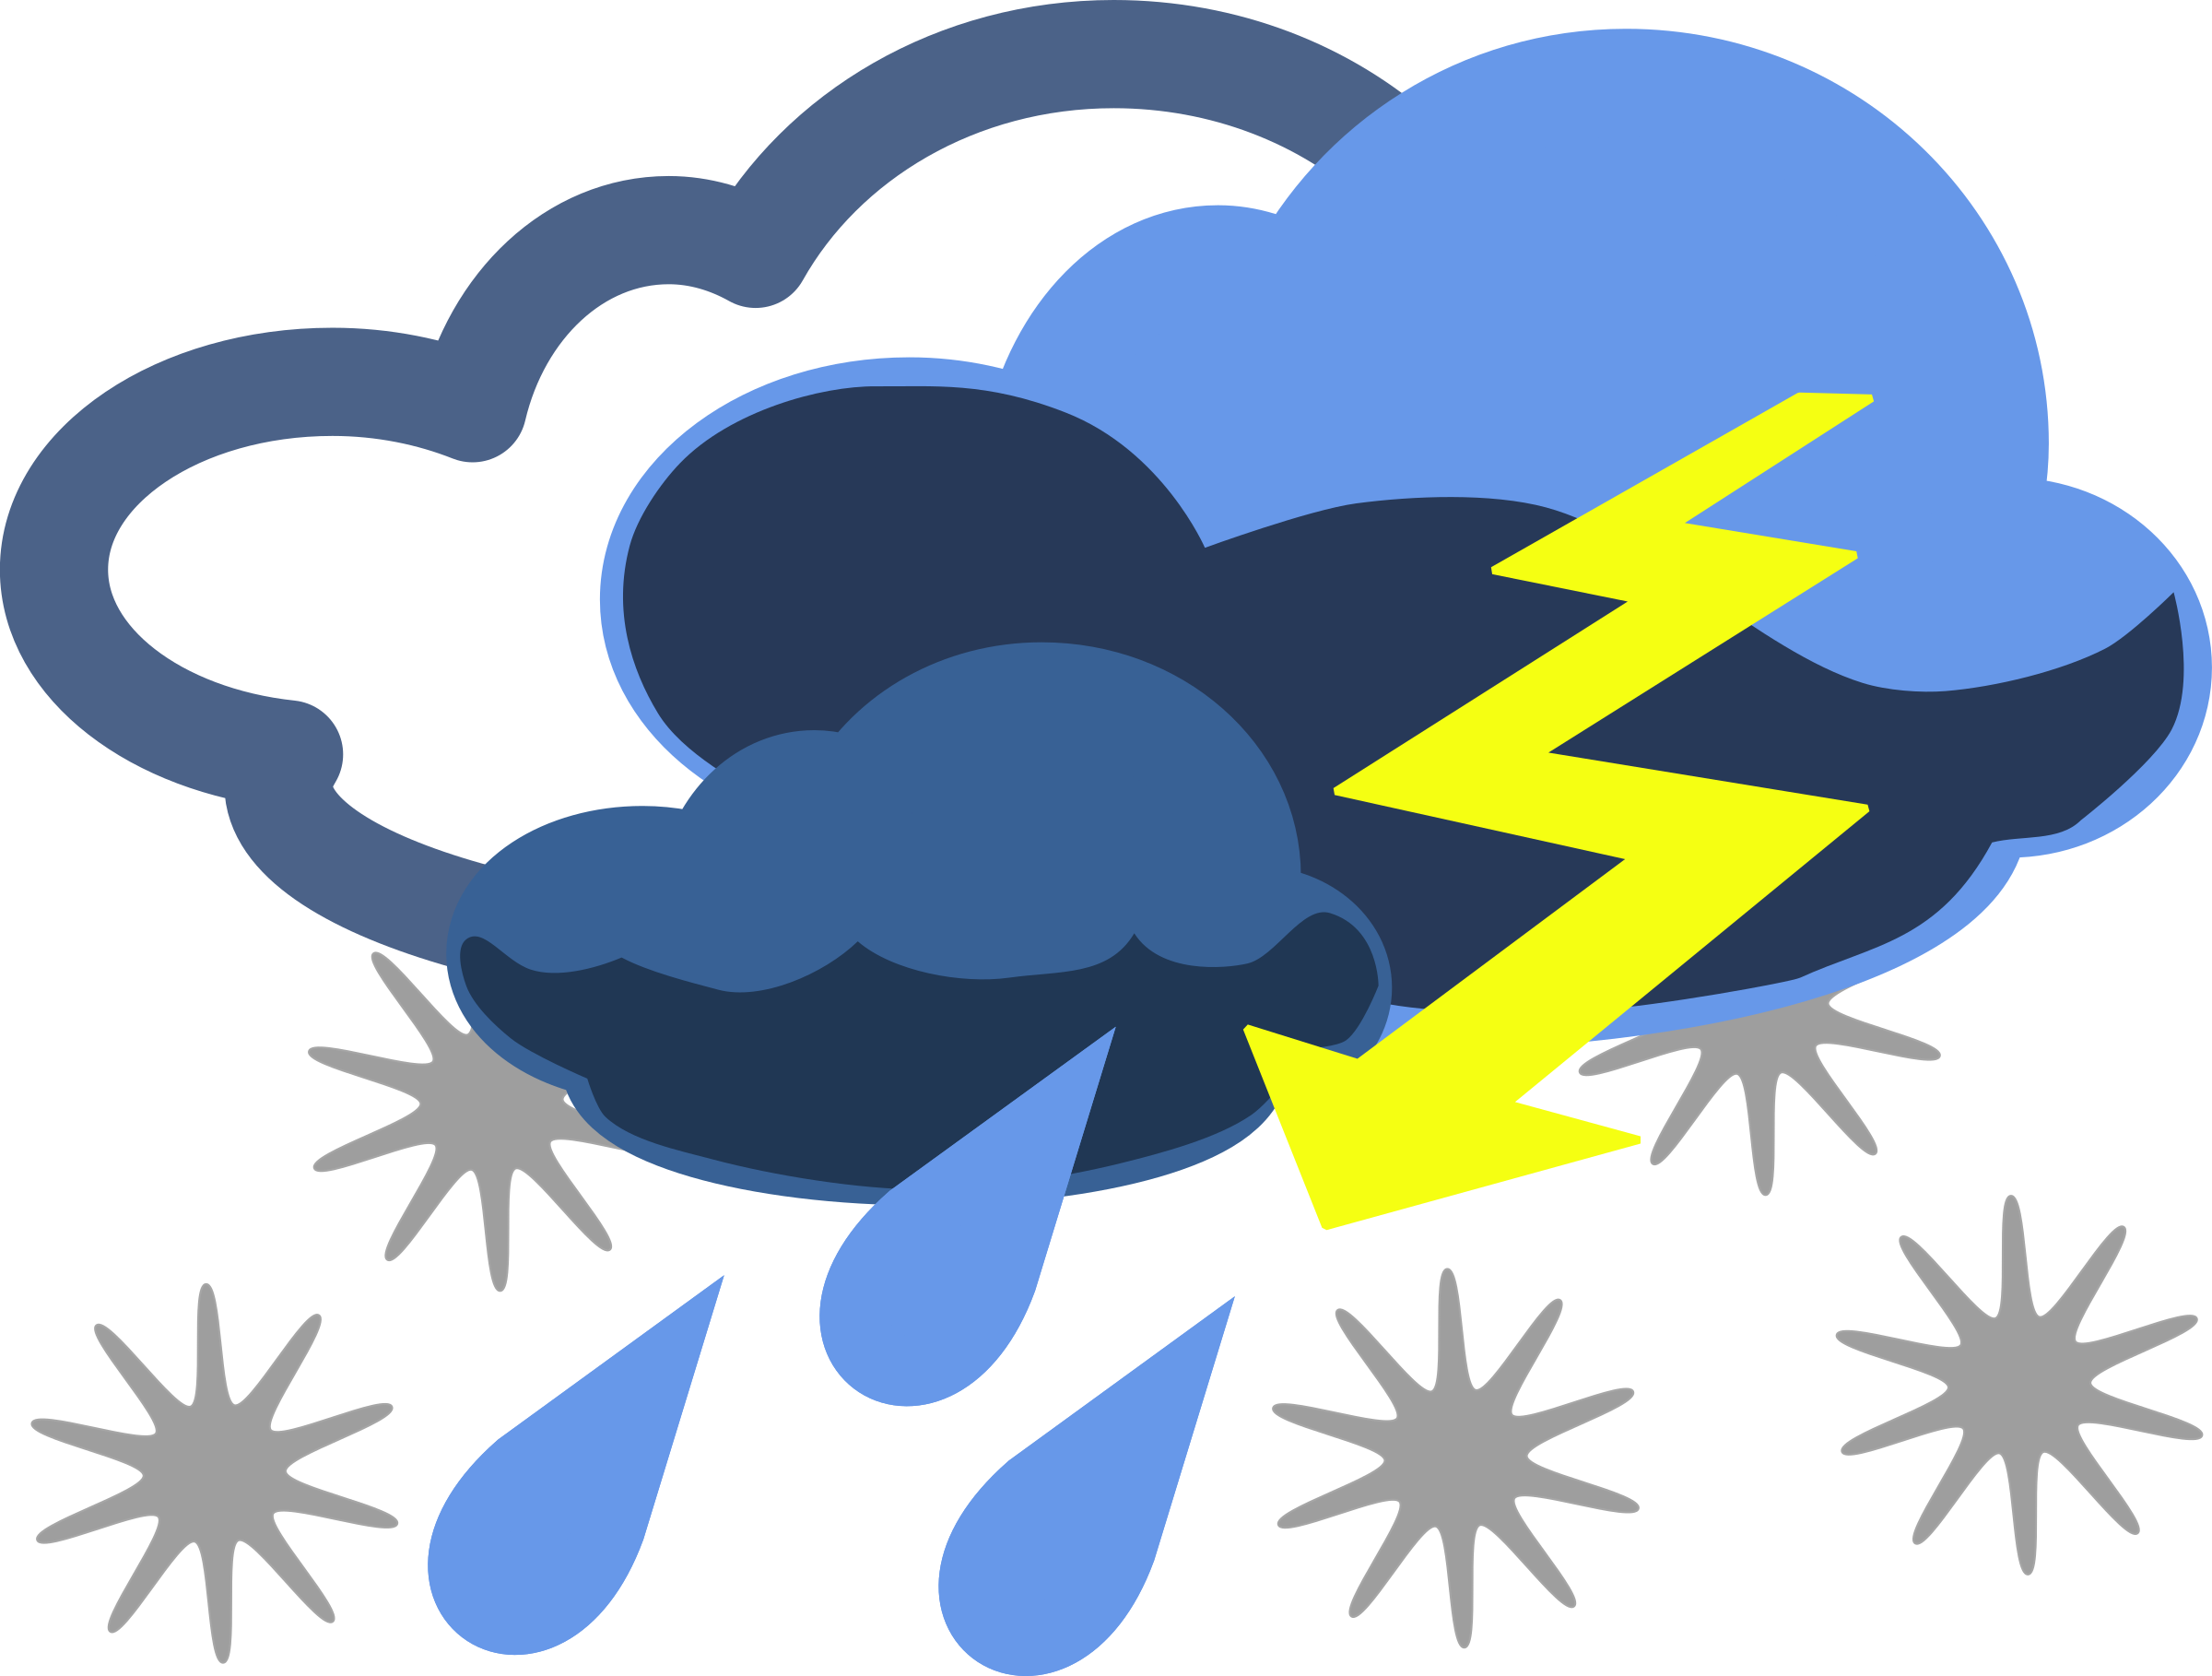 image free stock Weather clipart. Inclement big image png.